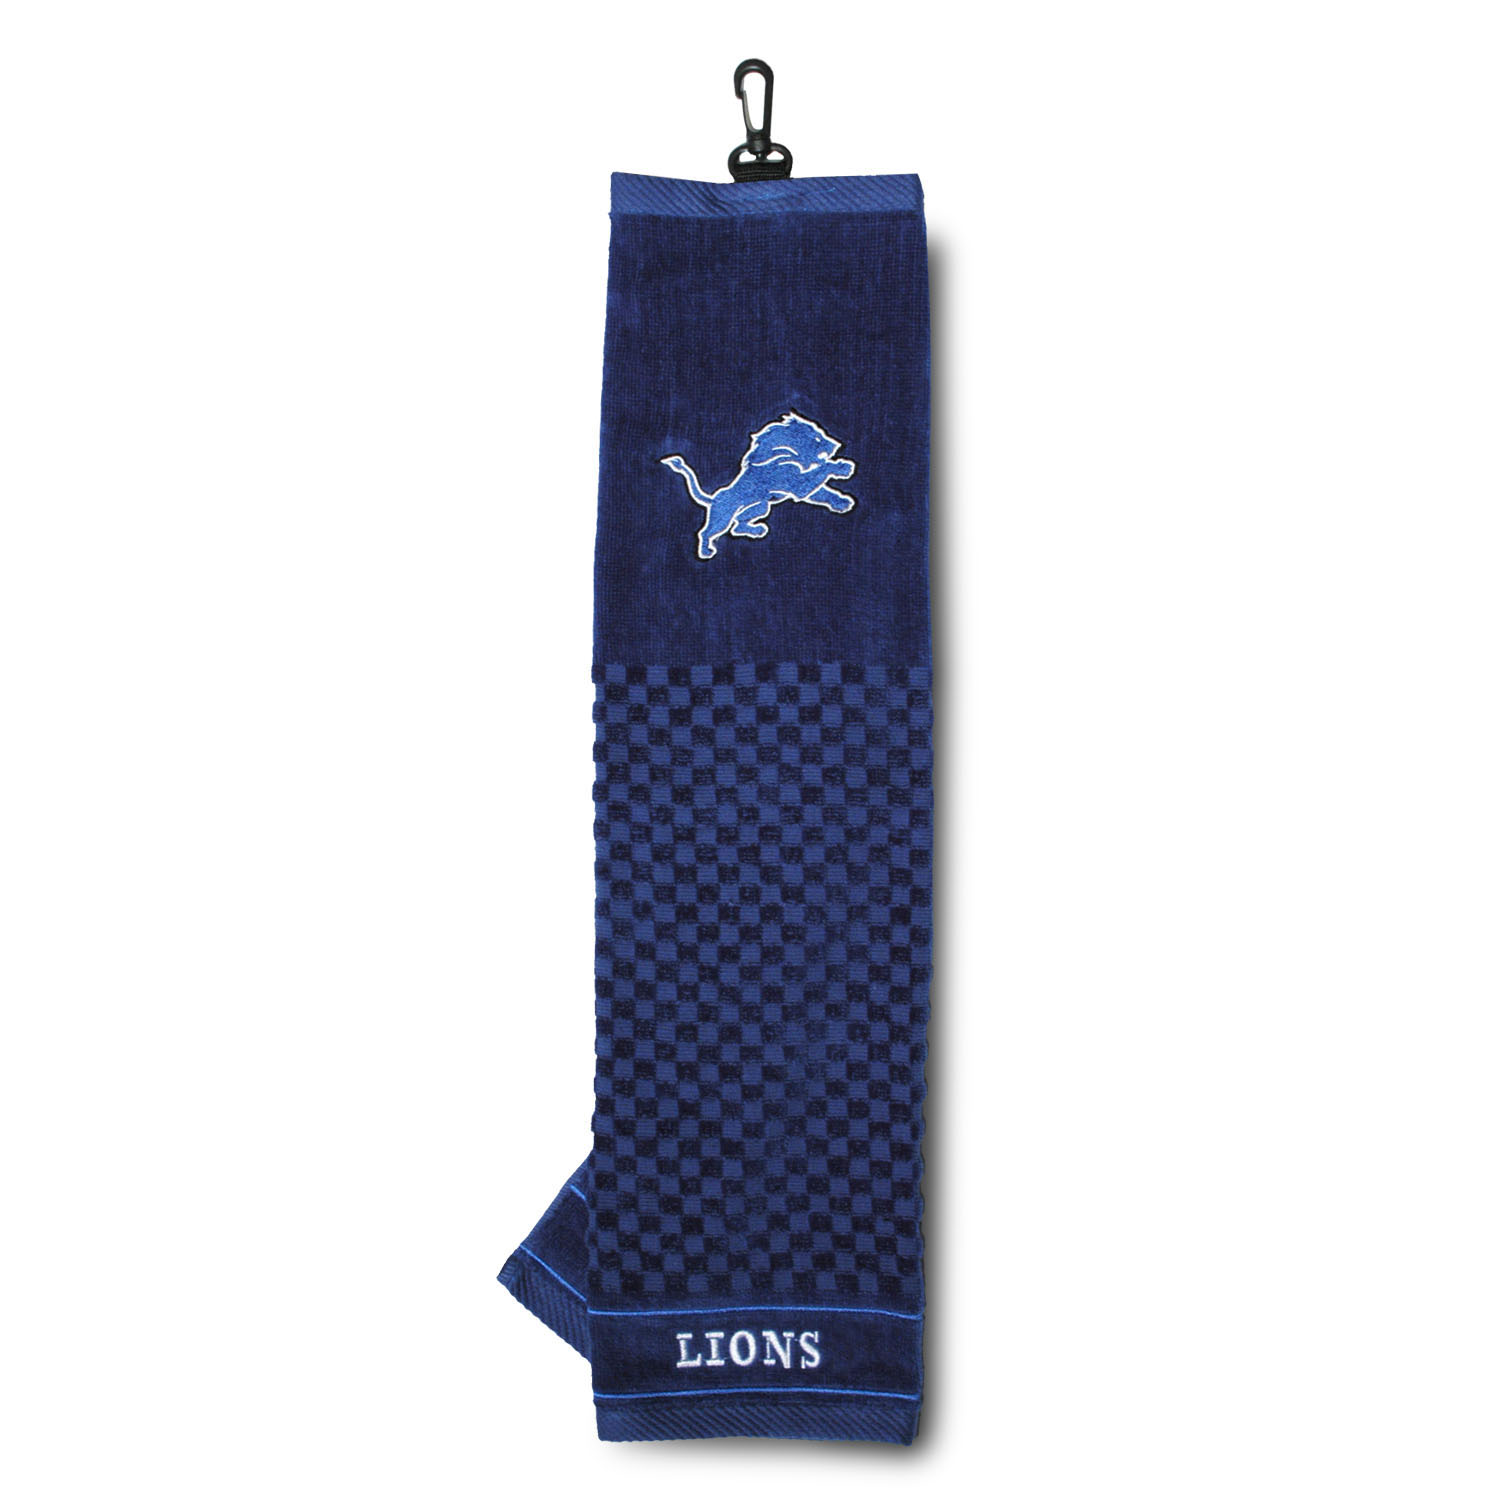 Embroidered Towels Online: NFL Embroidered Golf Towel